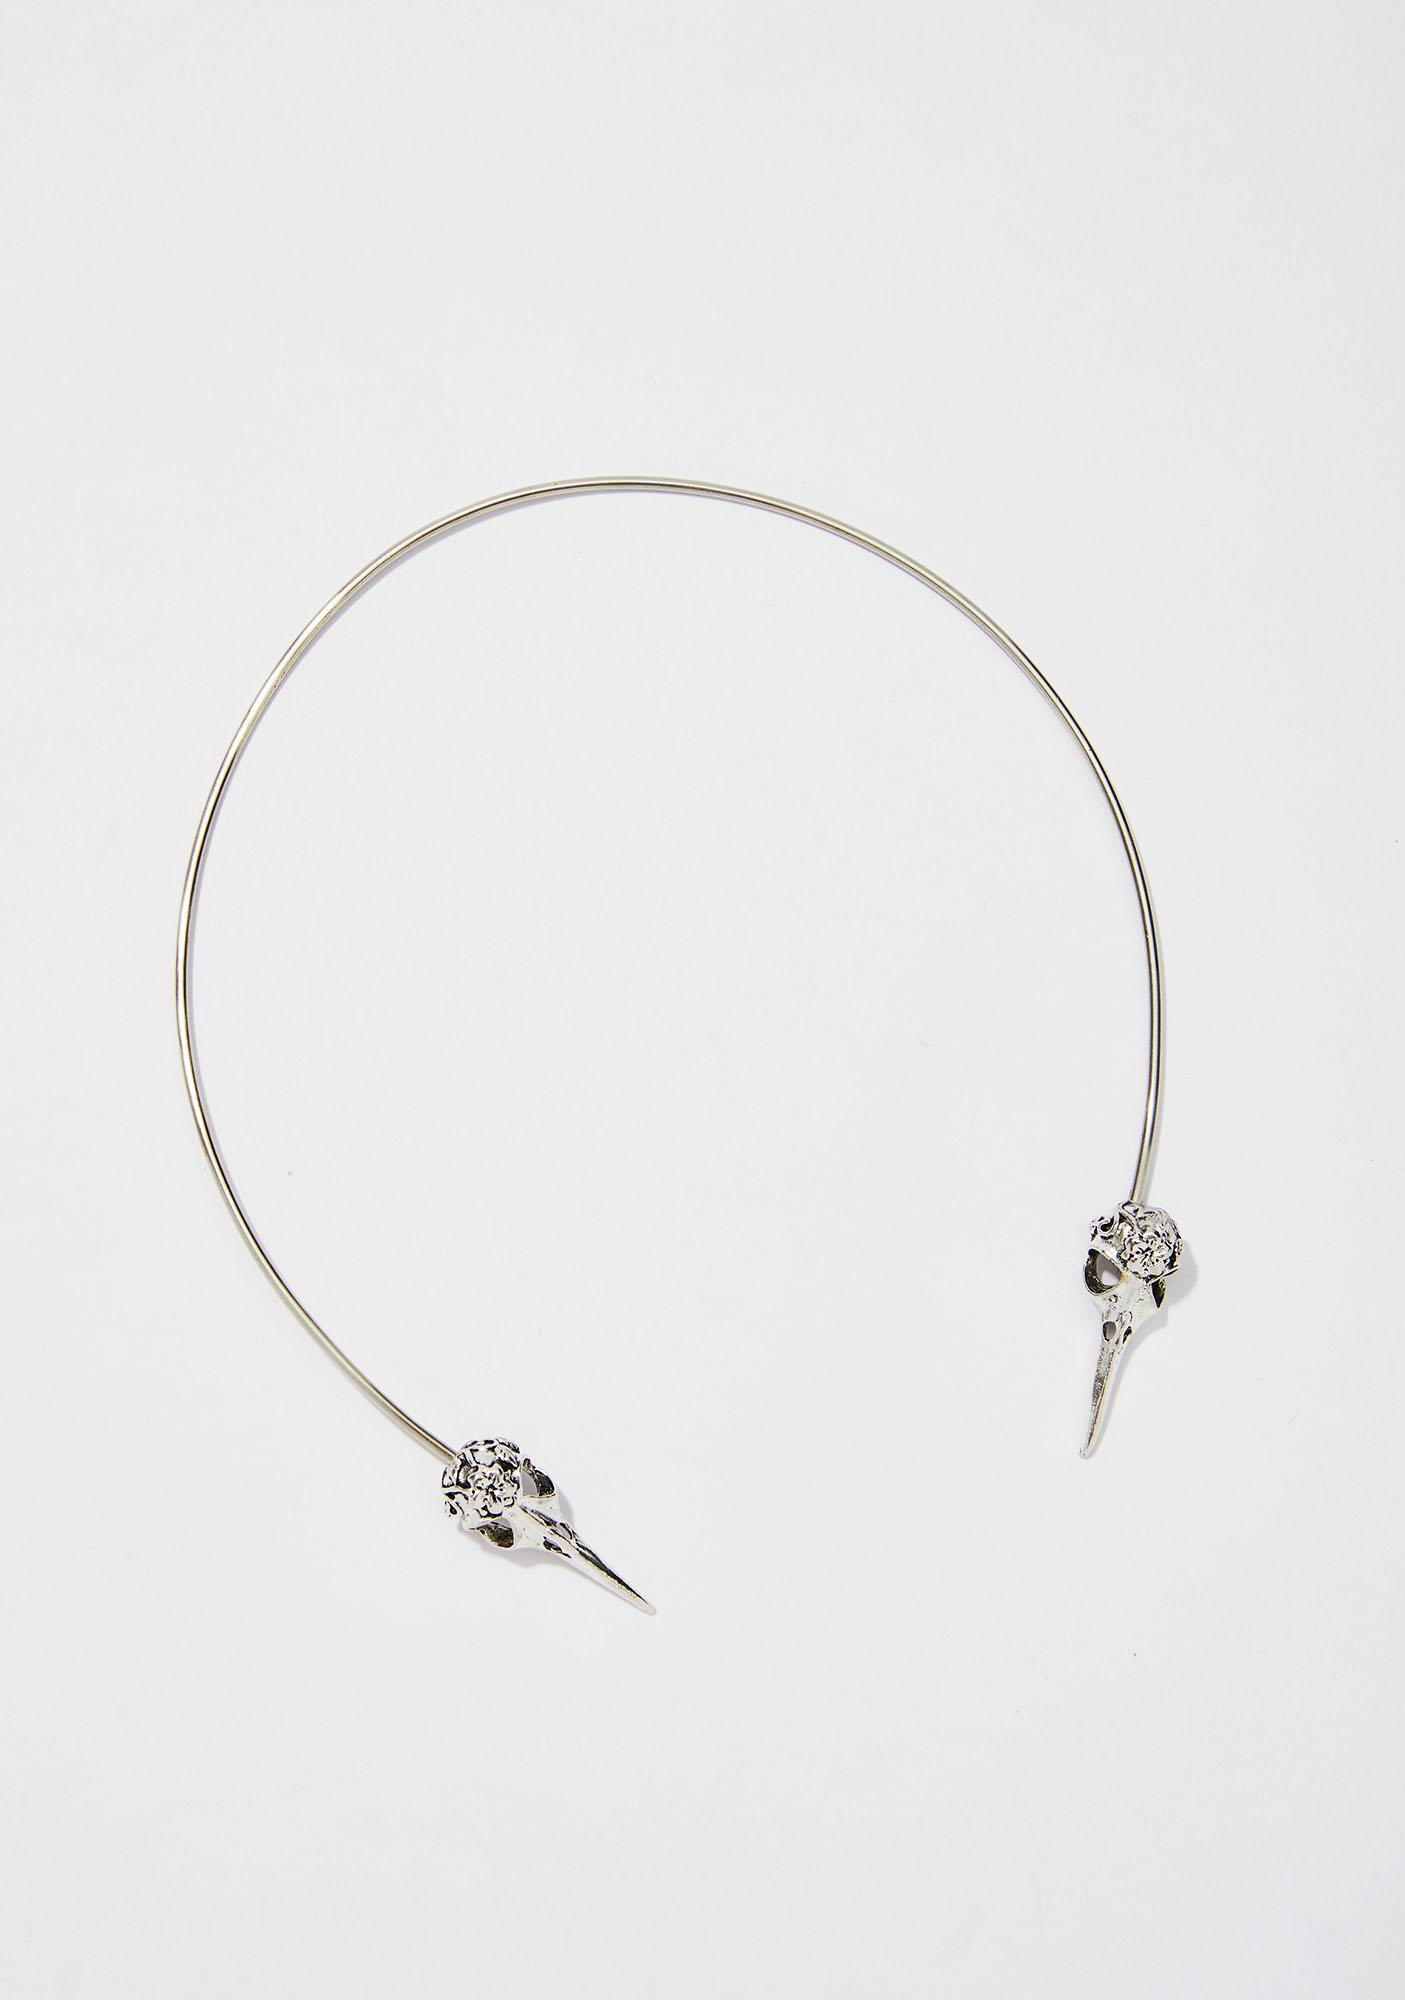 Ayalga Crow Torc Necklace